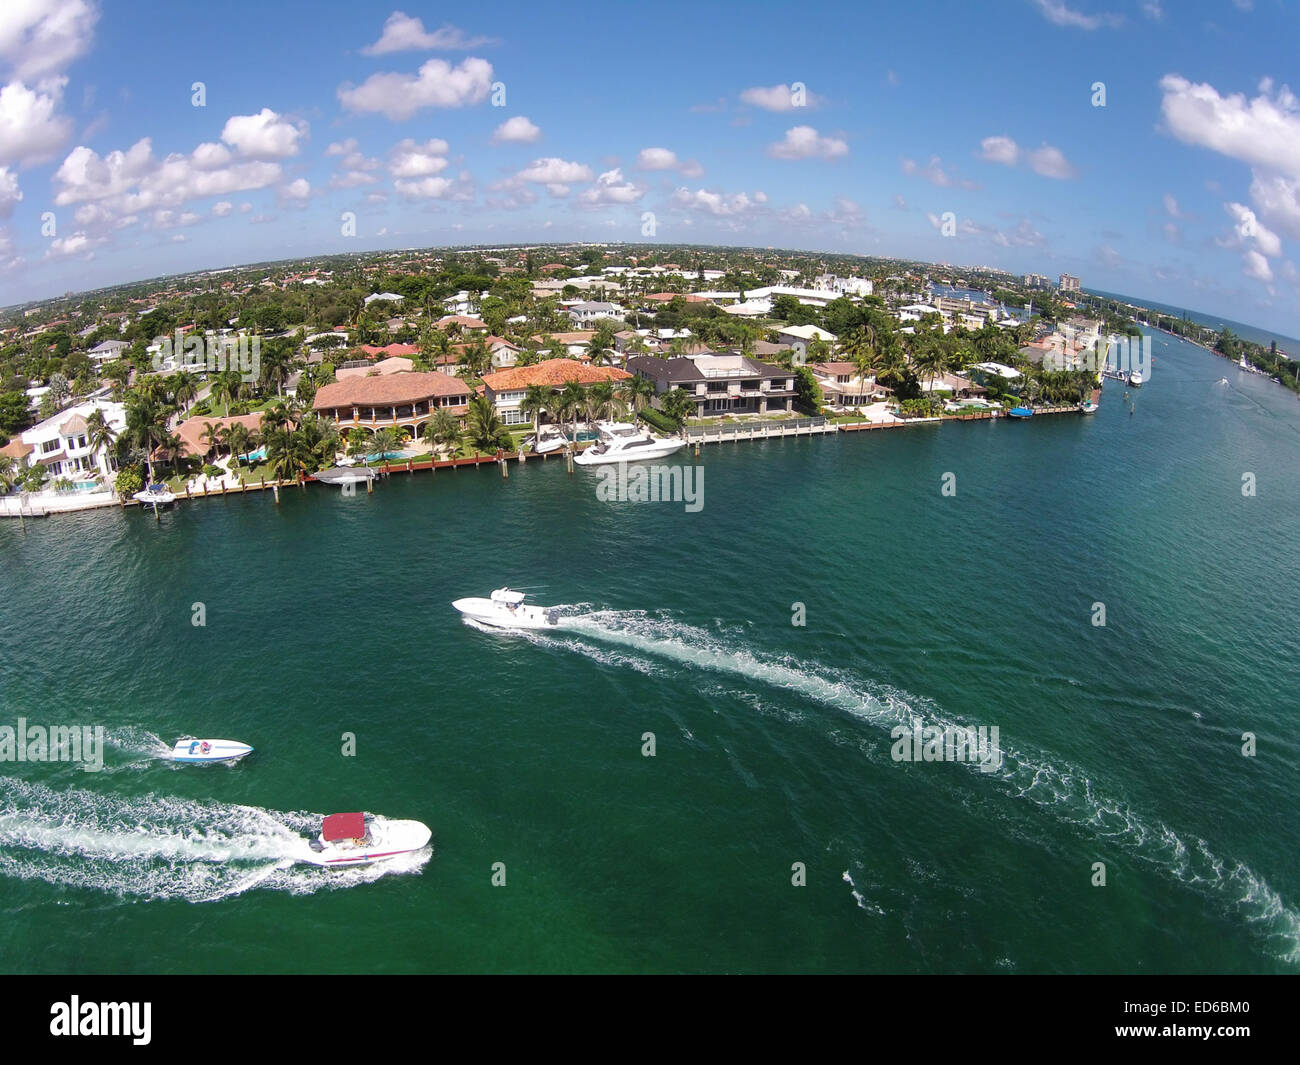 Weekend boating on the waterways of Boca Raton, Florida, birds eye view - Stock Image